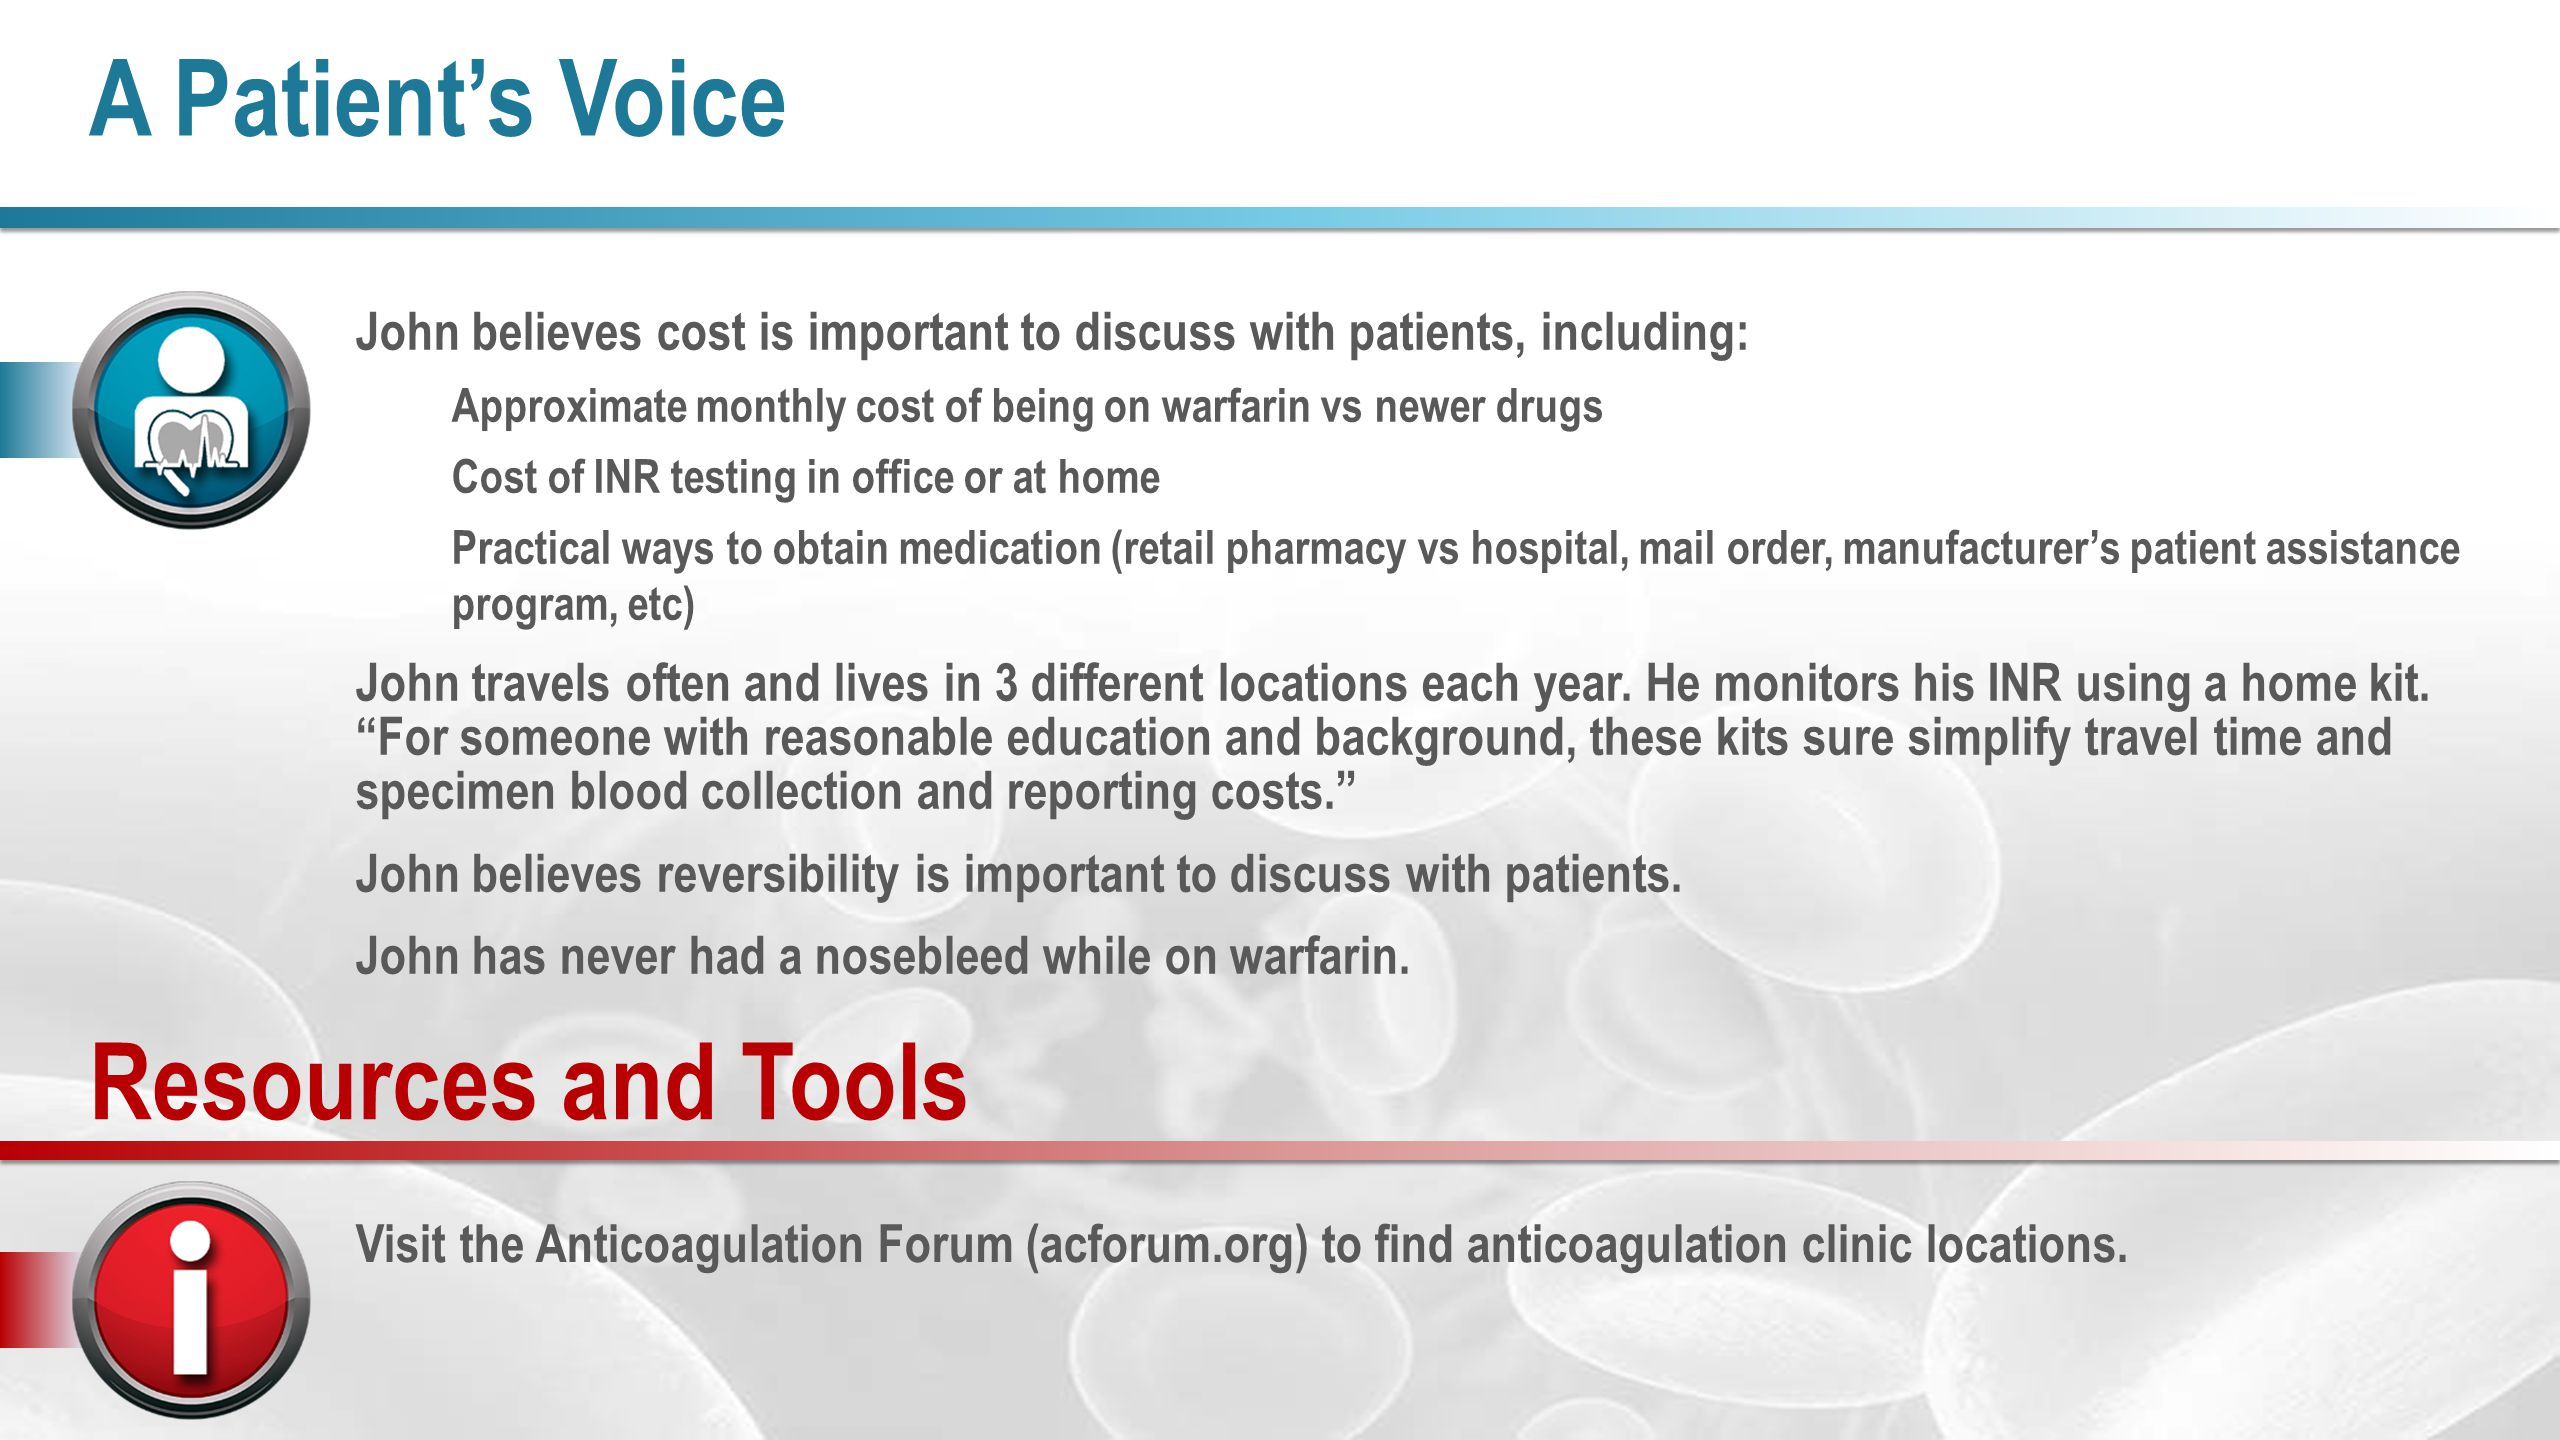 A Patient's Voice Use pamphlets, comic book-like brochures, or new apps to educate patients on strokes and anticoagulation.